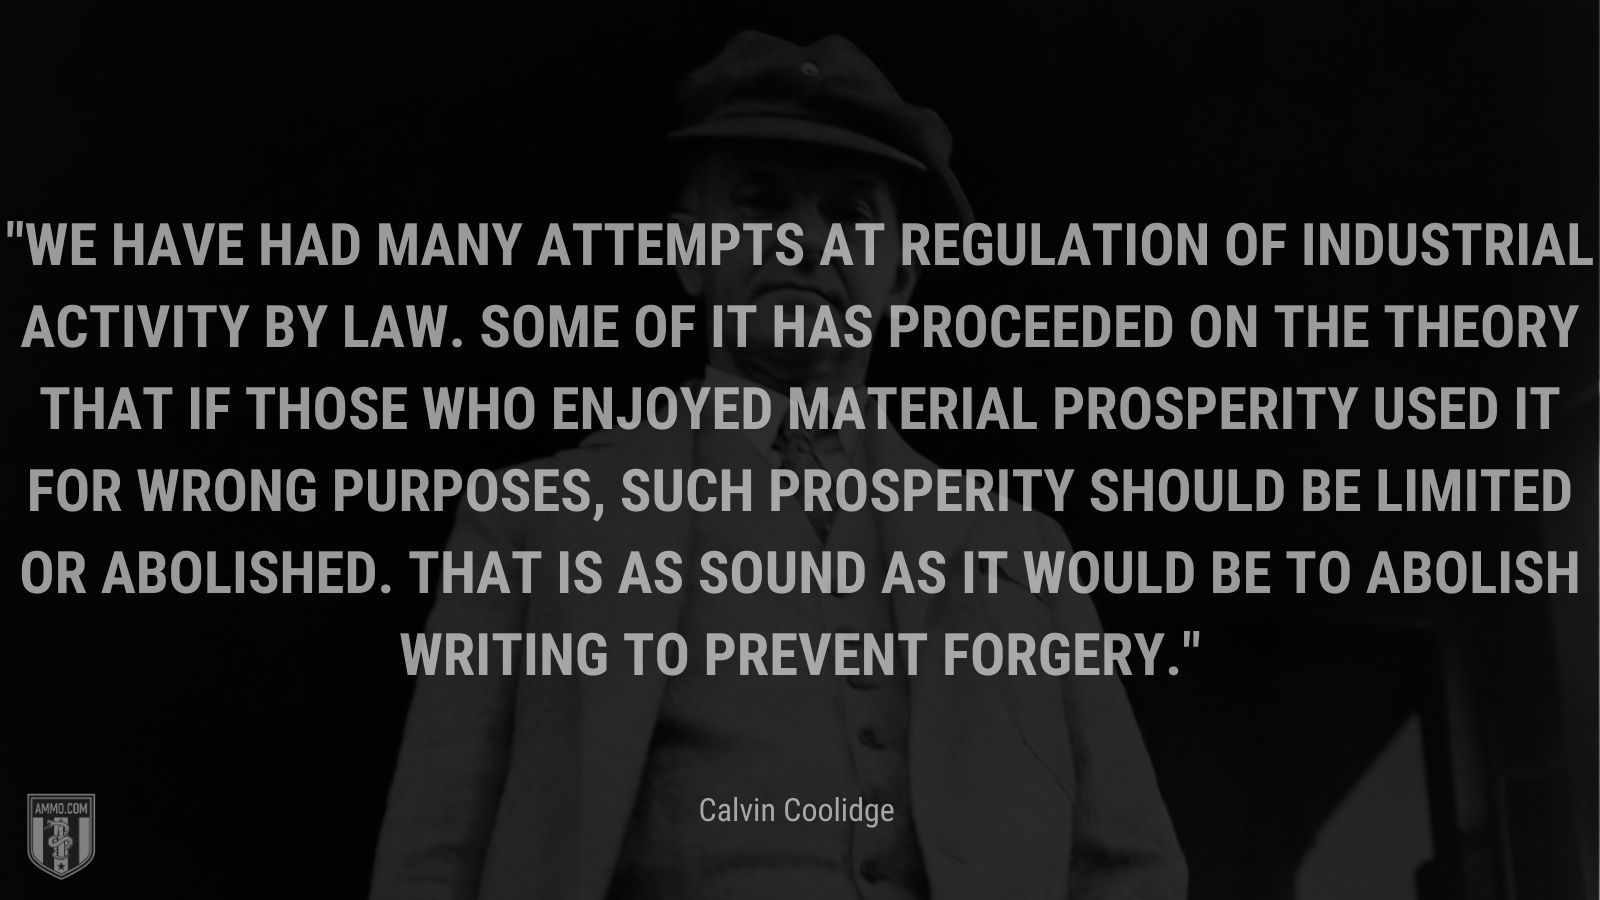 """""""We have had many attempts at regulation of industrial activity by law. Some of it has proceeded on the theory that if those who enjoyed material prosperity used it for wrong purposes, such prosperity should be limited or abolished. That is as sound as it would be to abolish writing to prevent forgery."""" - Calvin Coolidge"""